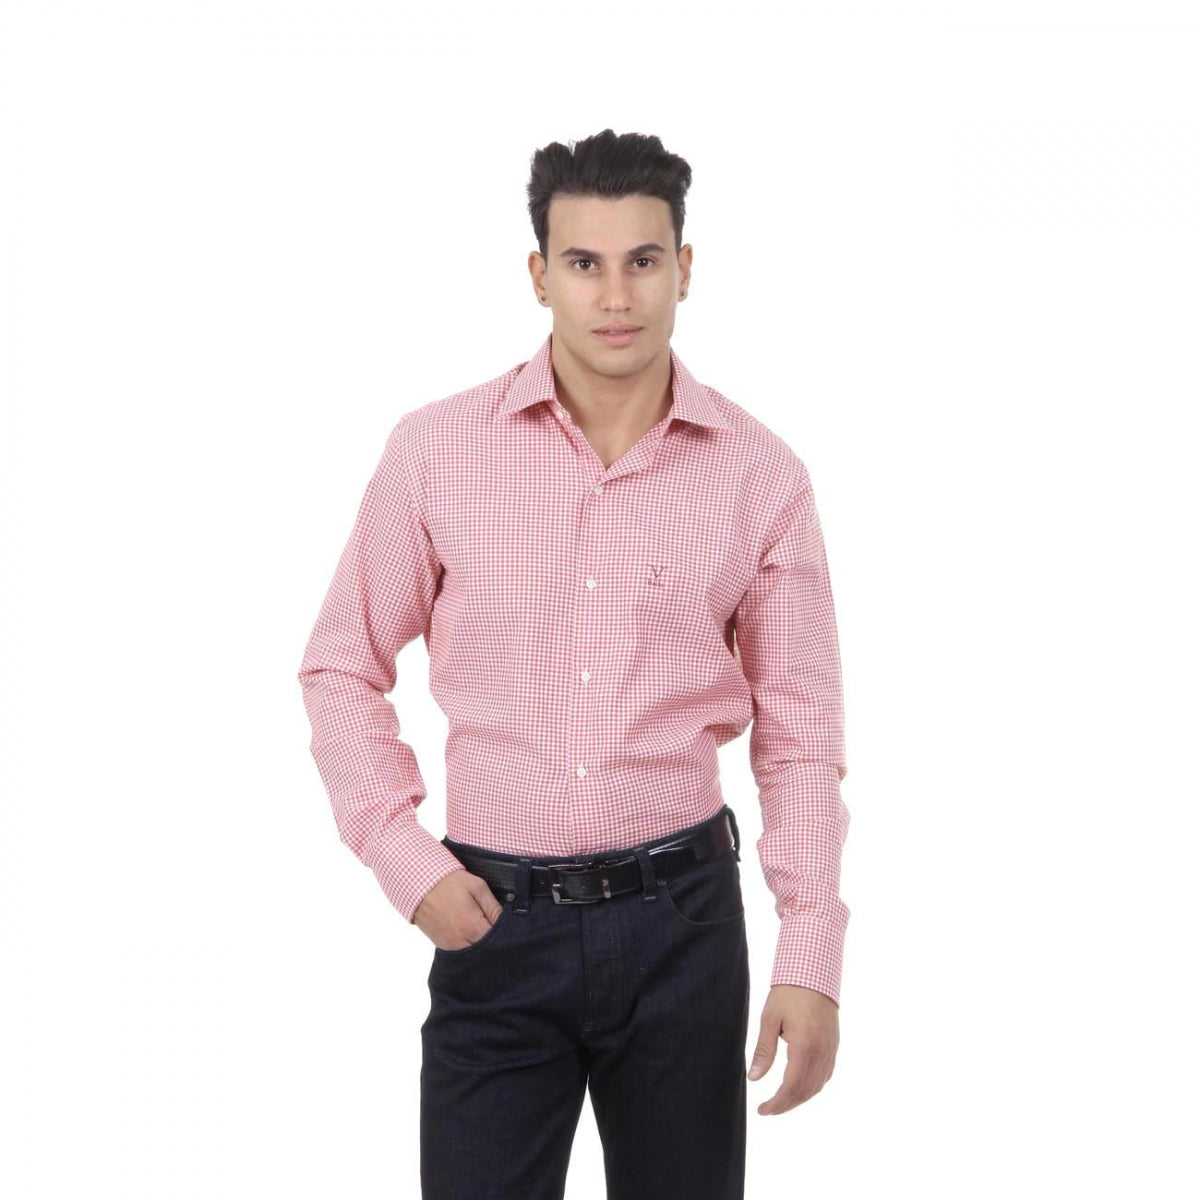 V 1969 Italia Mens Fit Modern Classic Shirt 377 ART. 023